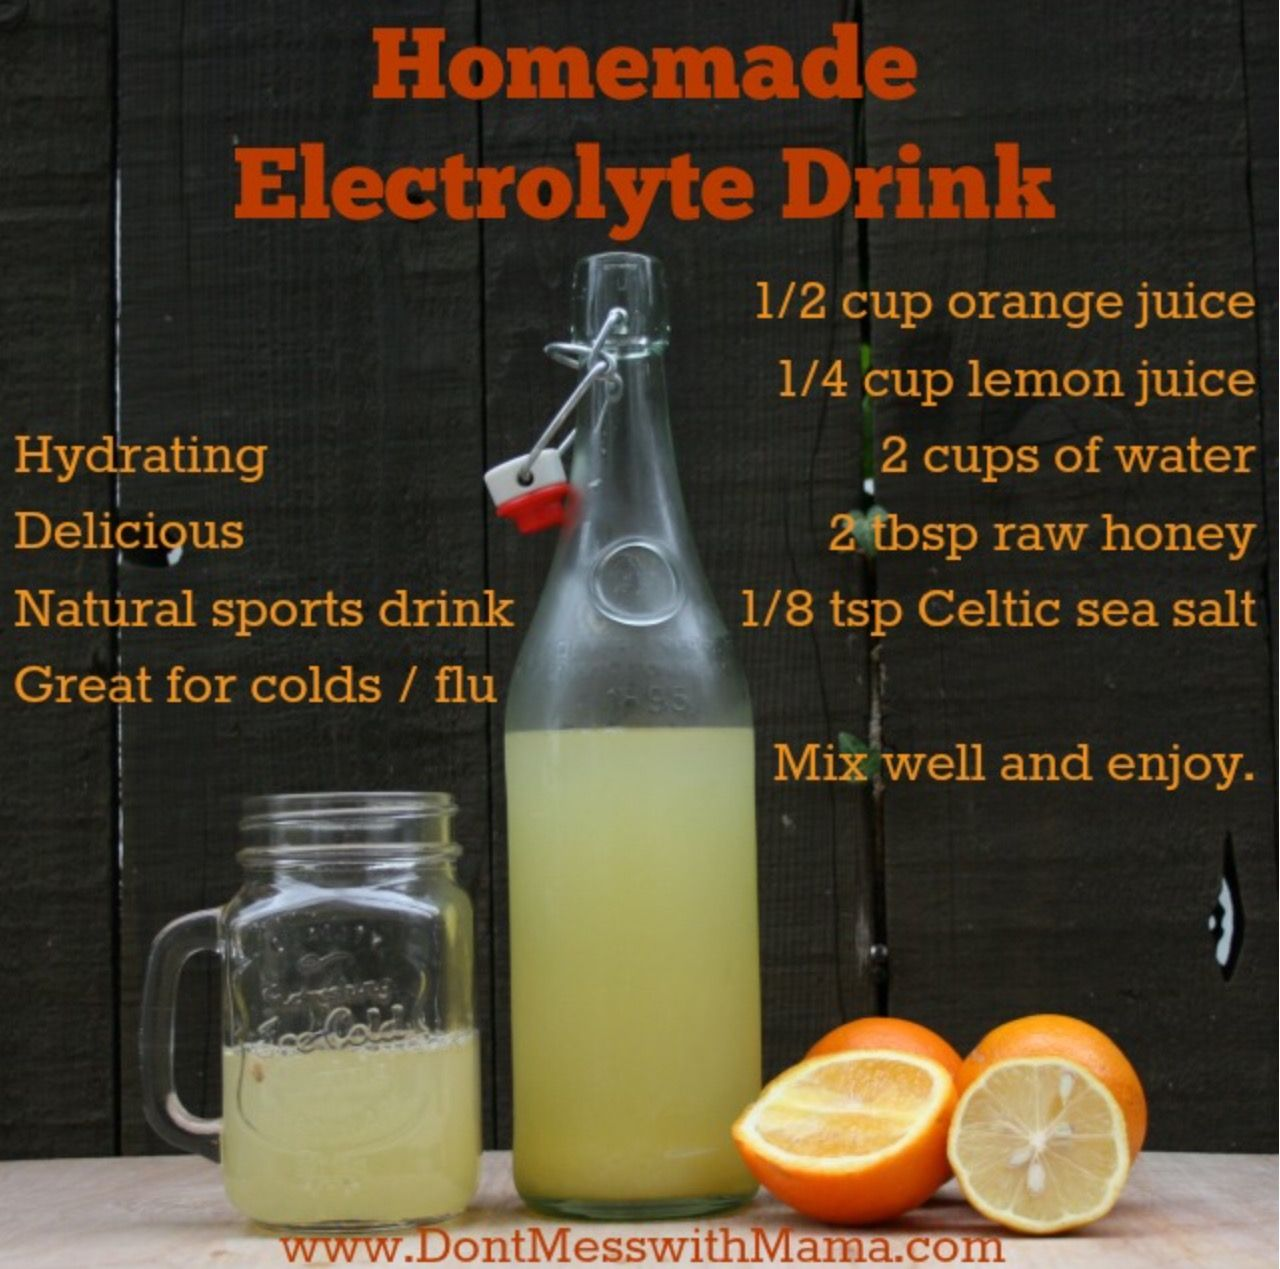 Pin by Cynthia Moir on HEALTHY OPTIONS Homemade